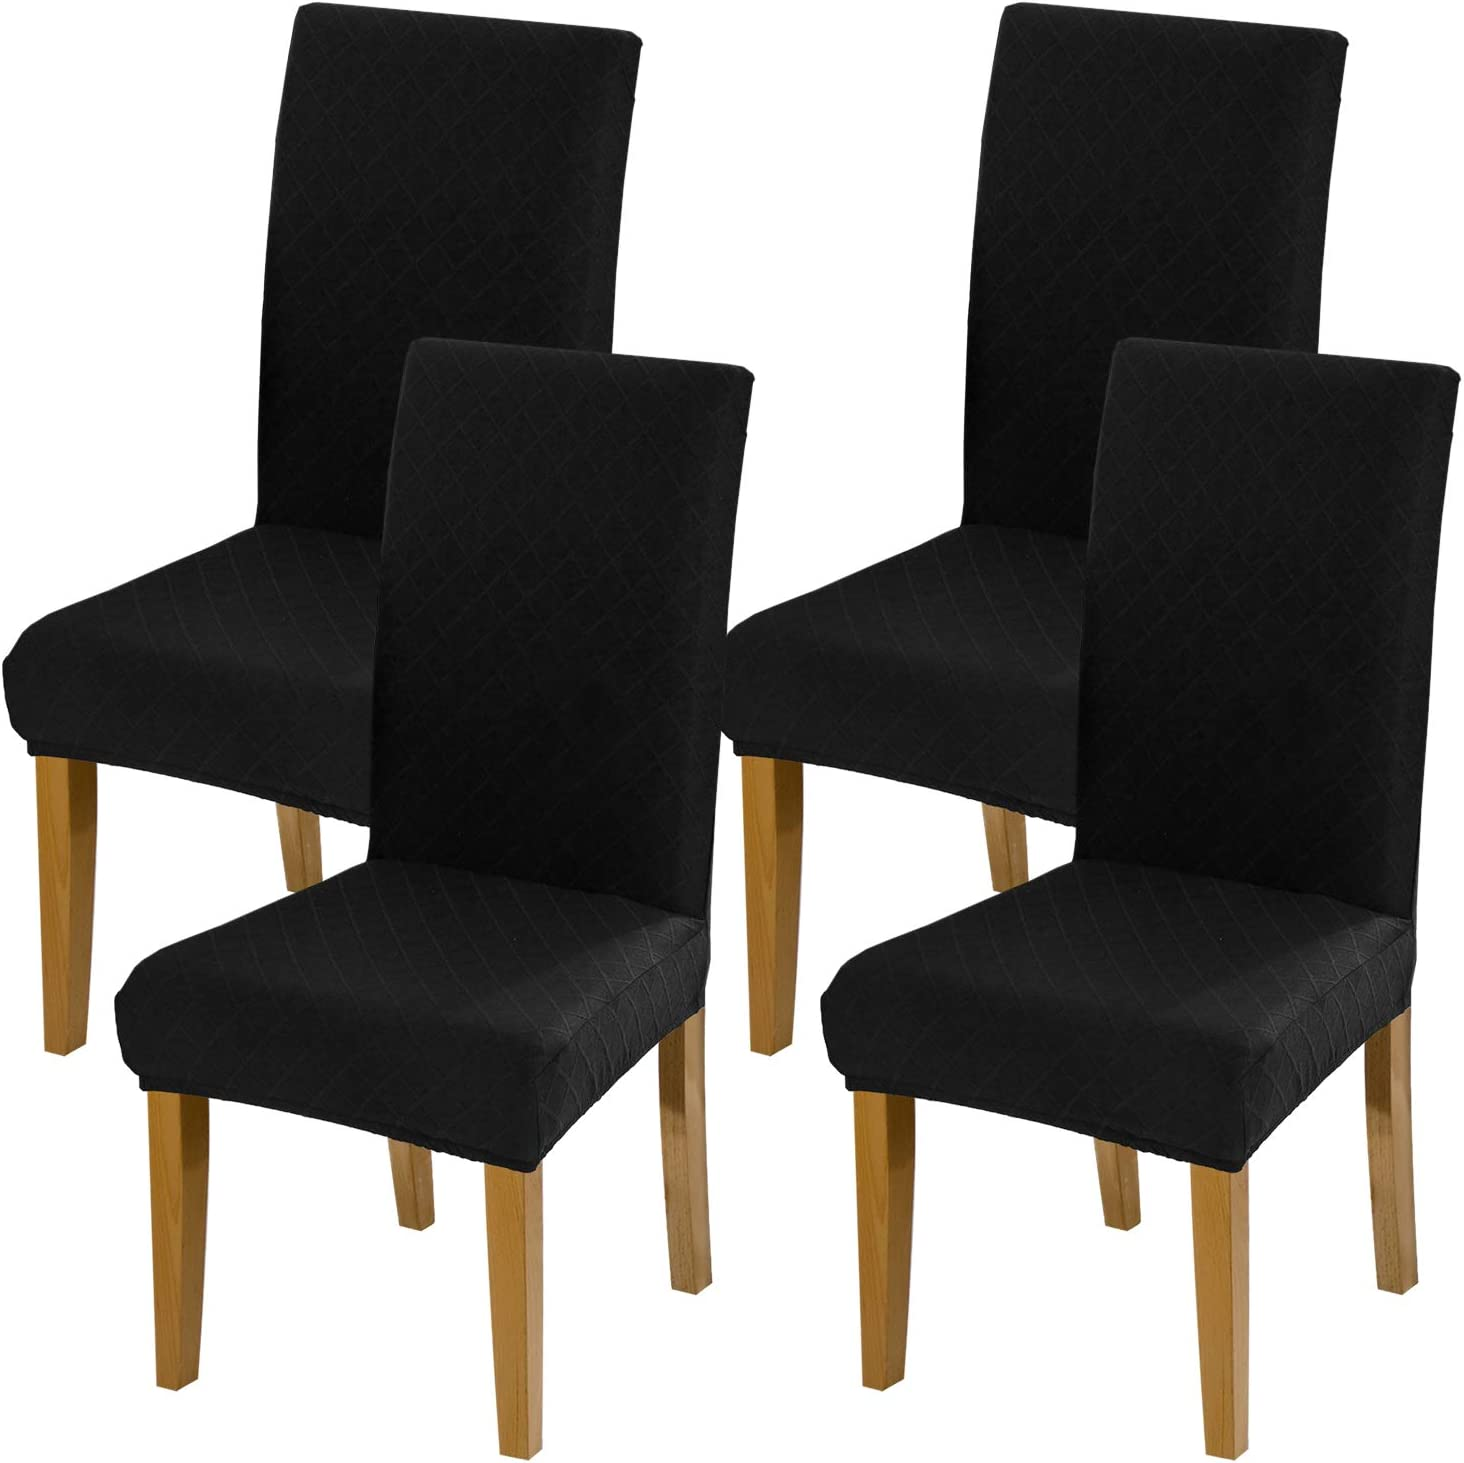 YISUN Stretch Dining Chair Covers, Spandex Jacquard Removable Washable Dining Chair Protect Cover Seat Slipcover for Hotel, Dining Room, Ceremony, Banquet Wedding Party (Black, 4 PCS)